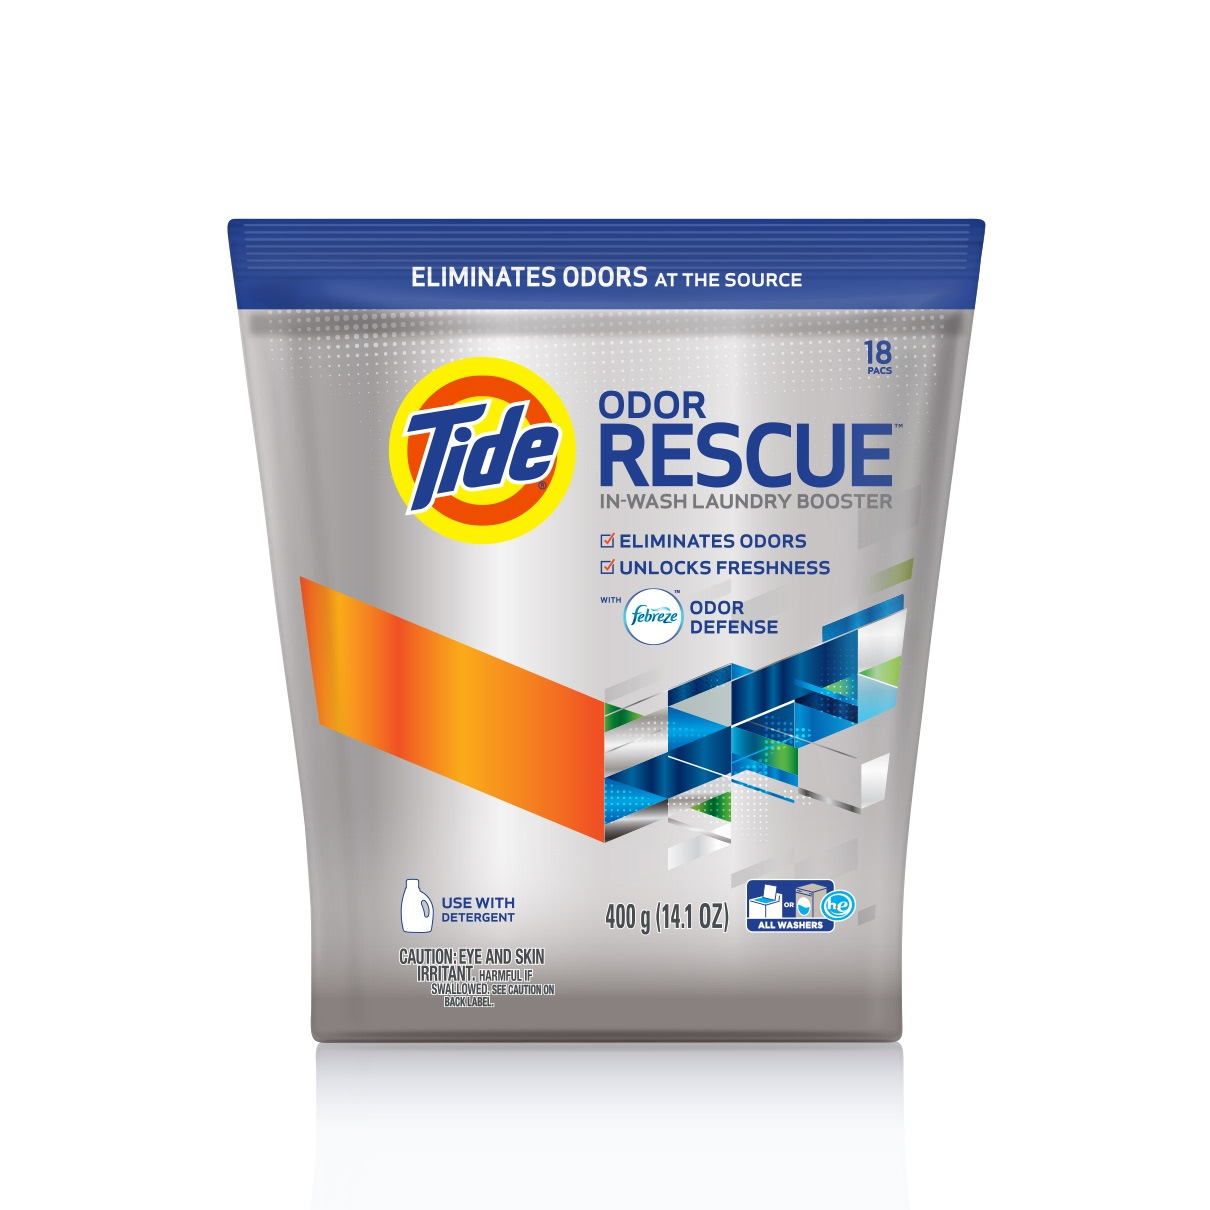 Tide Odor Rescue™ con Febreze Odor Defense™